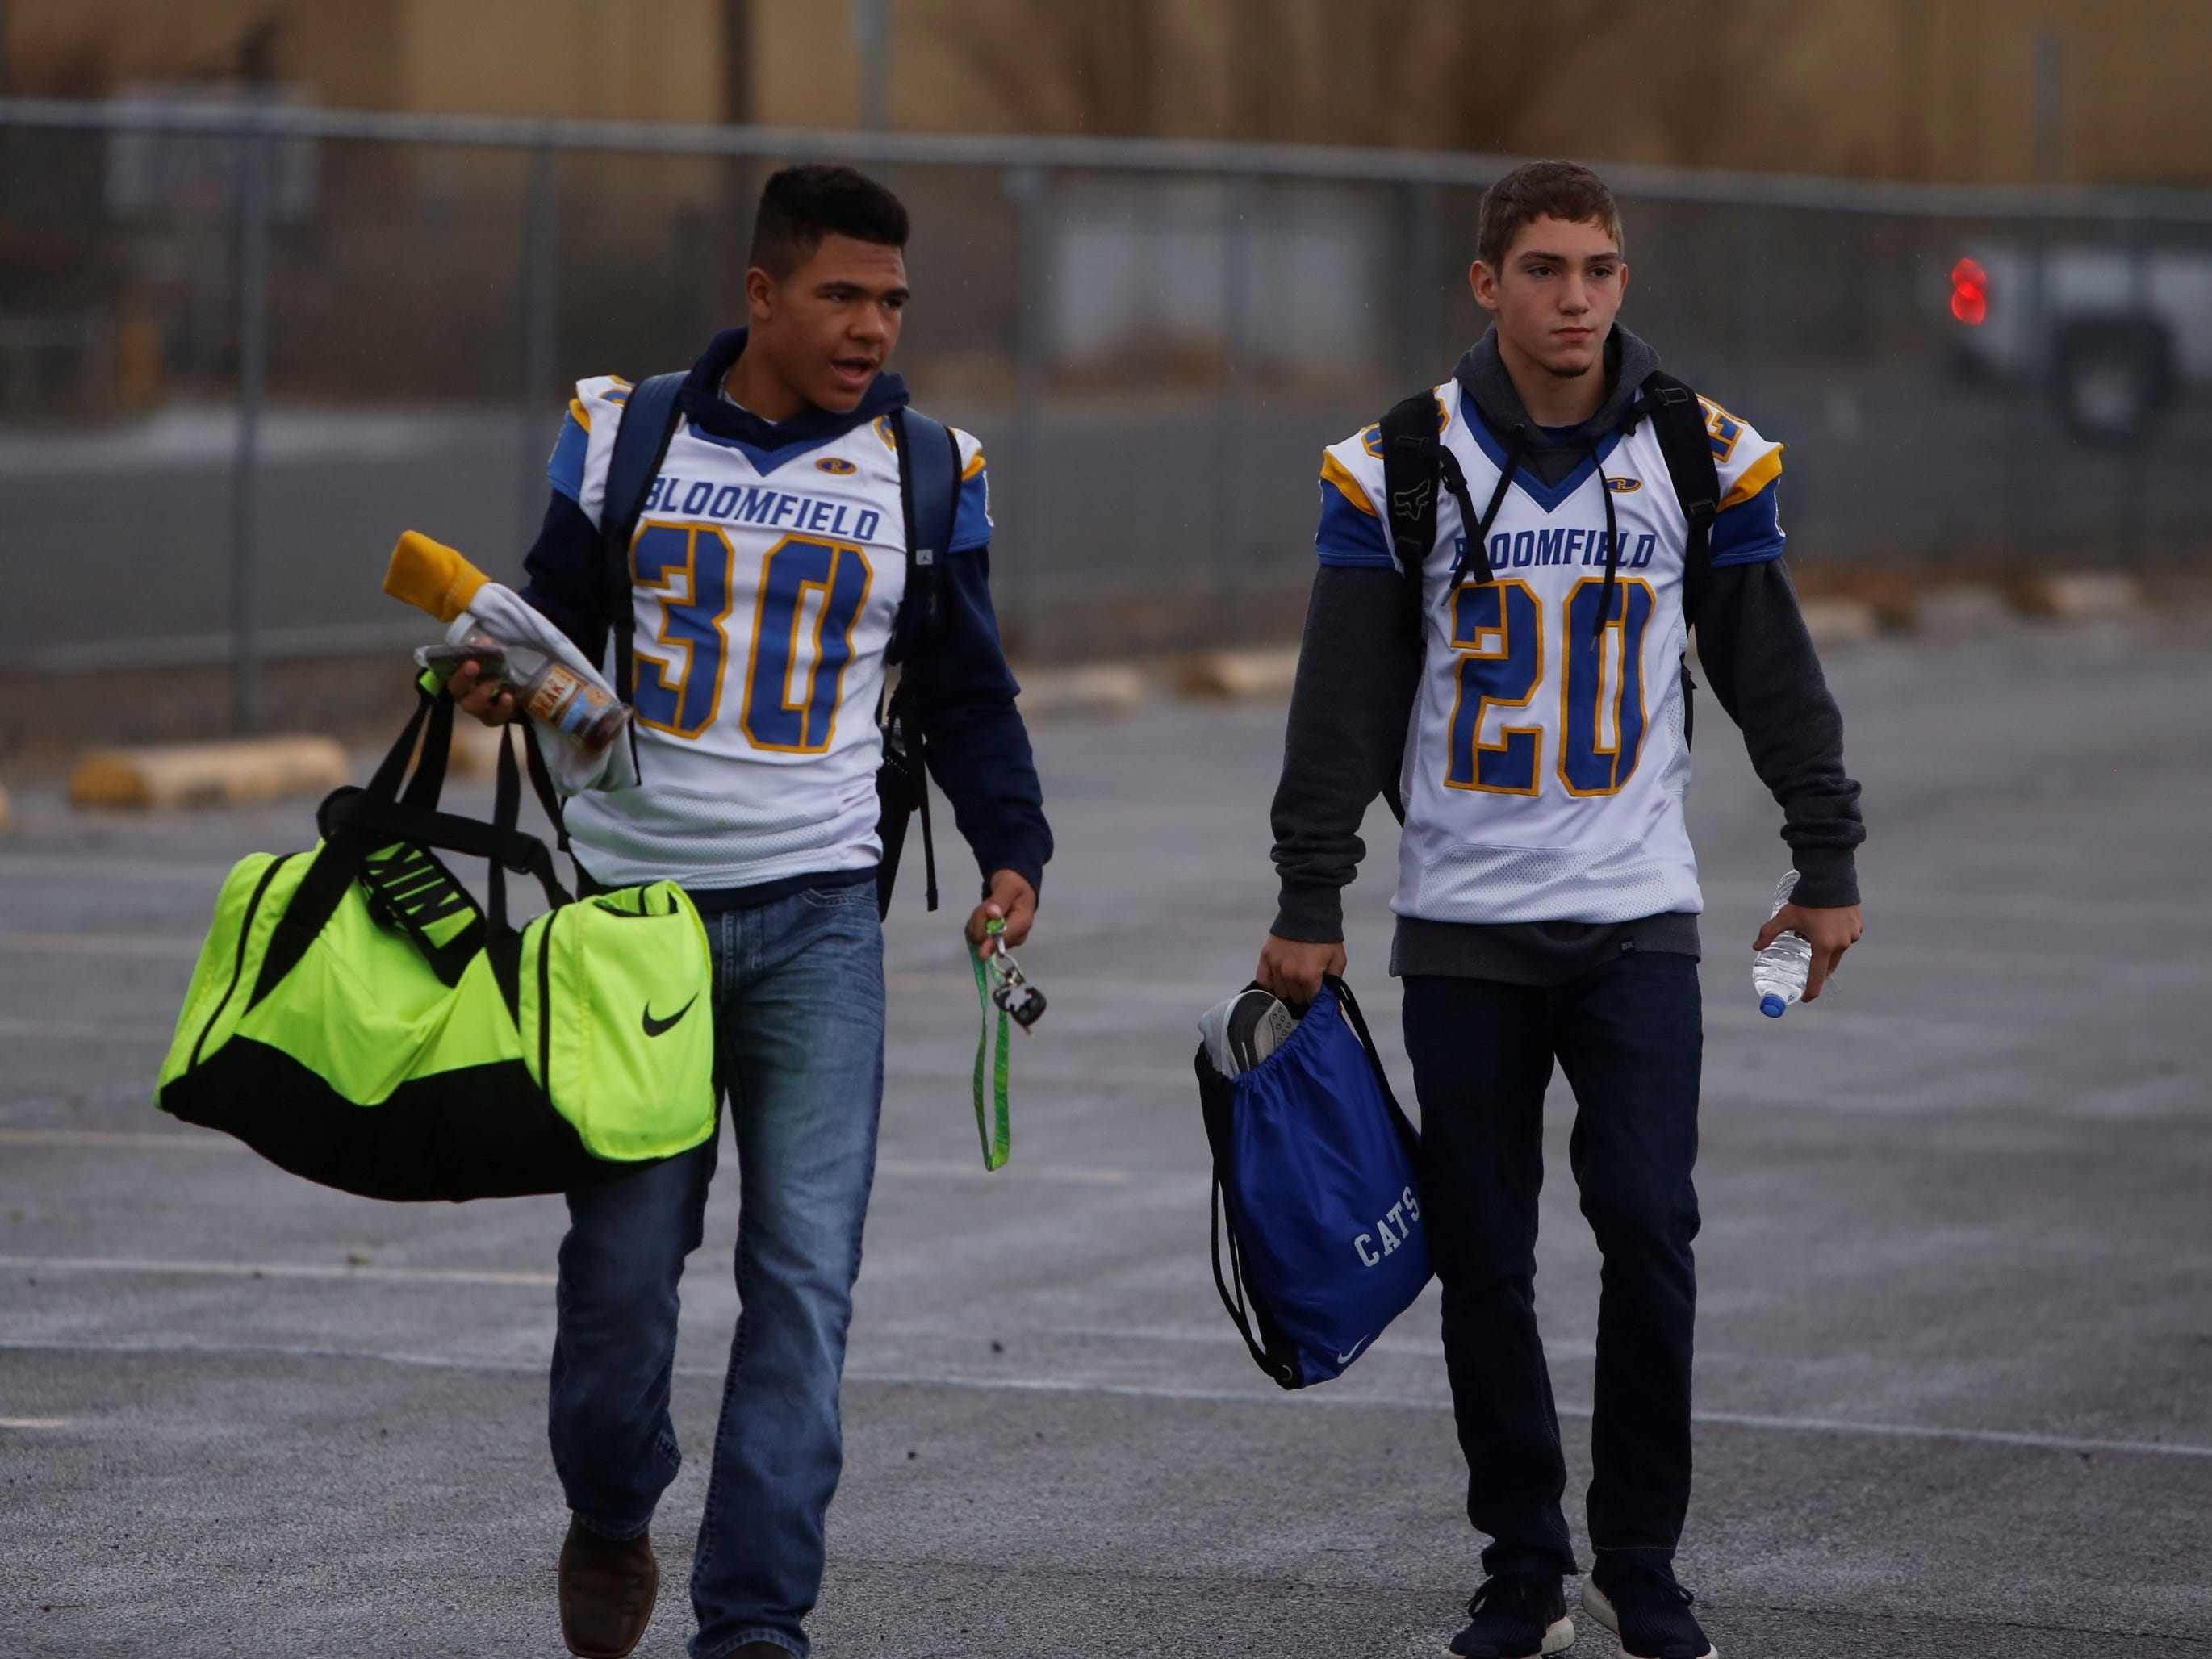 Bloomfield's Kenyon Mosley (30) and Anthony Gonzales (20) arrive at the Bobcat Stadium parking lot to board the team bus for Taos on Friday.